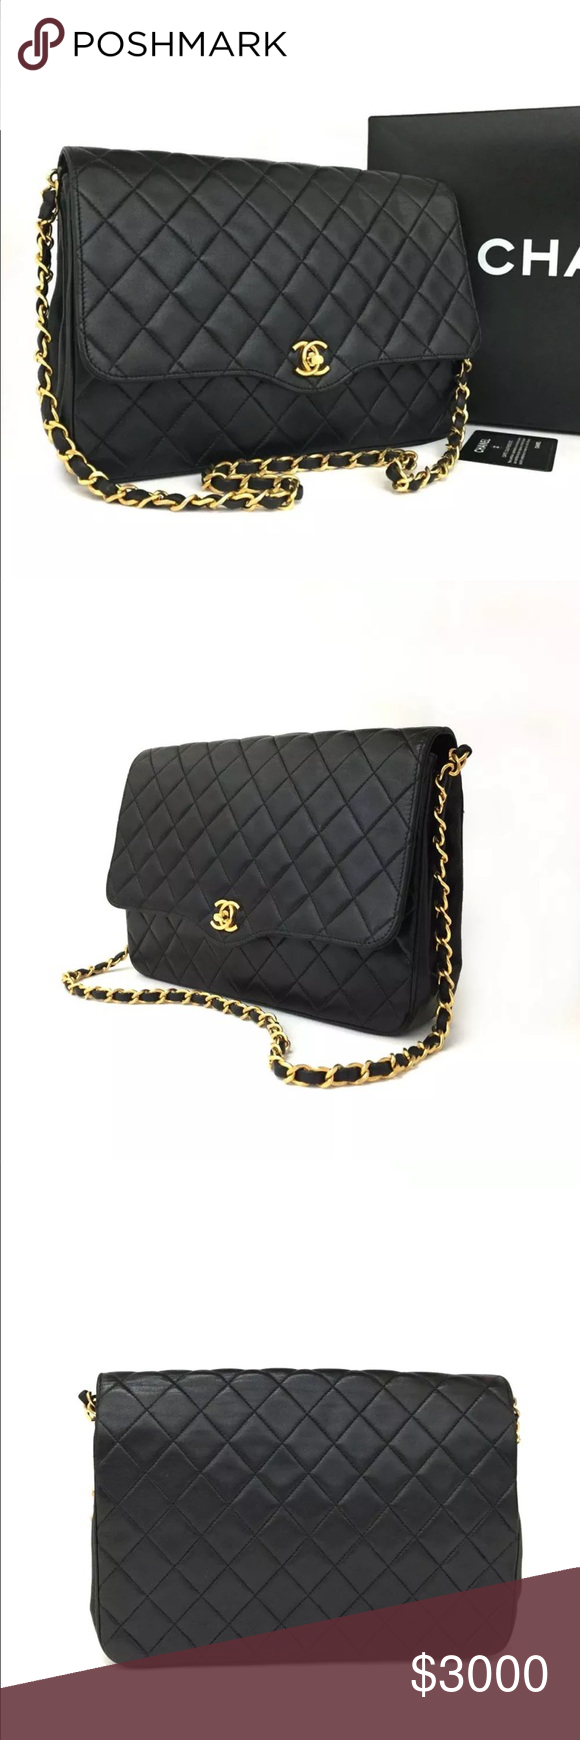 3ee2958ba5f Chanel cc logo matelasse lambskin shoulder bag Authentic Vintage CHANEL  Quilted Matelasse CC Logo Lambskin Chain